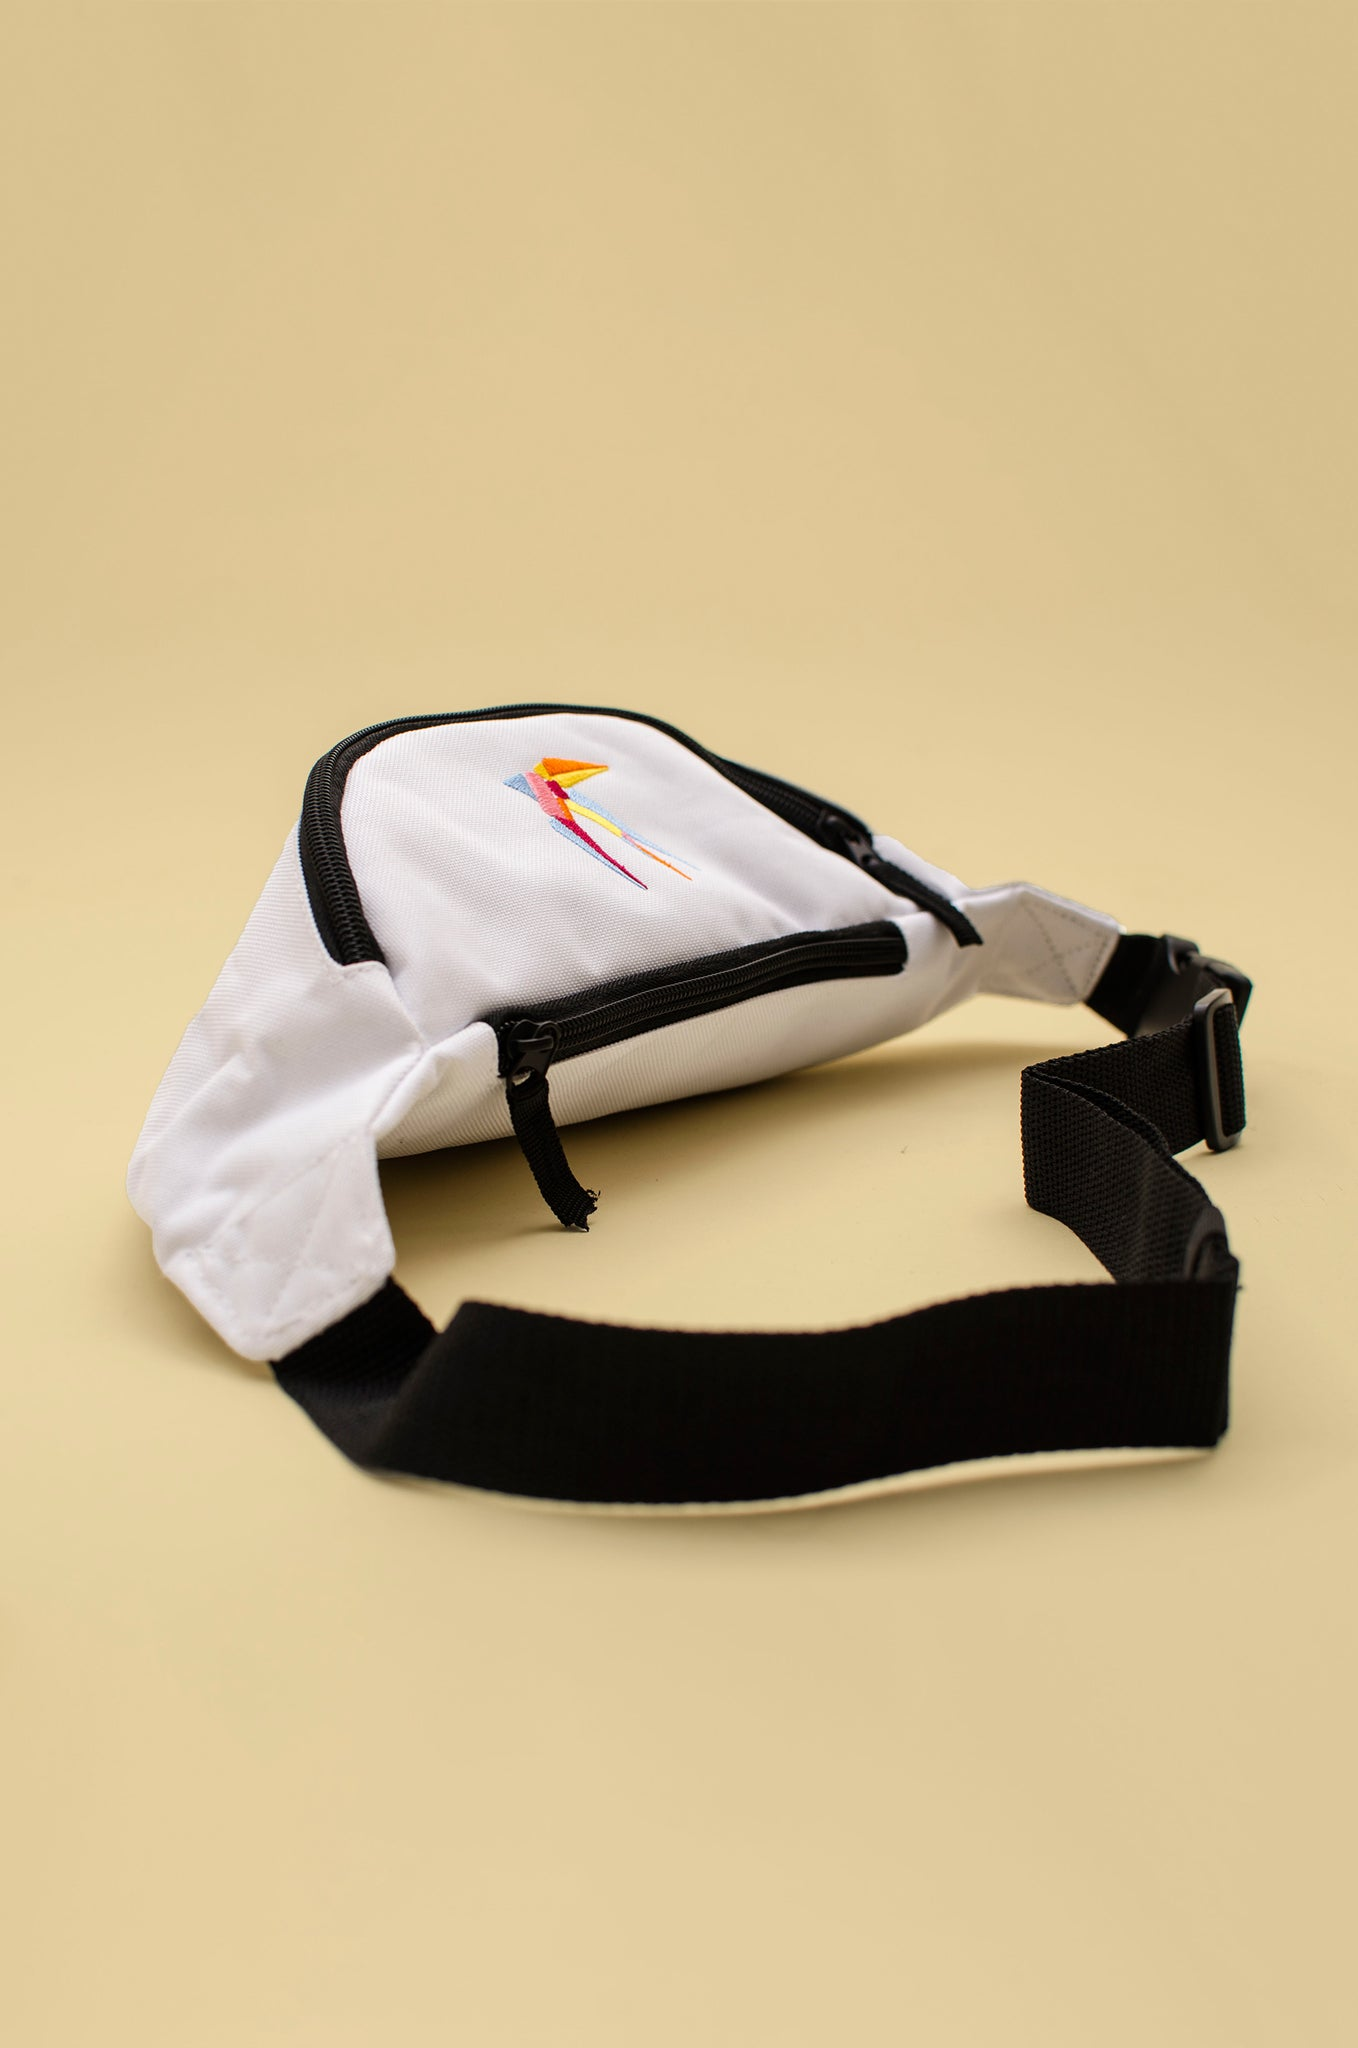 The North Hill Hirondelle Fanny Pack is a made in France belt bag